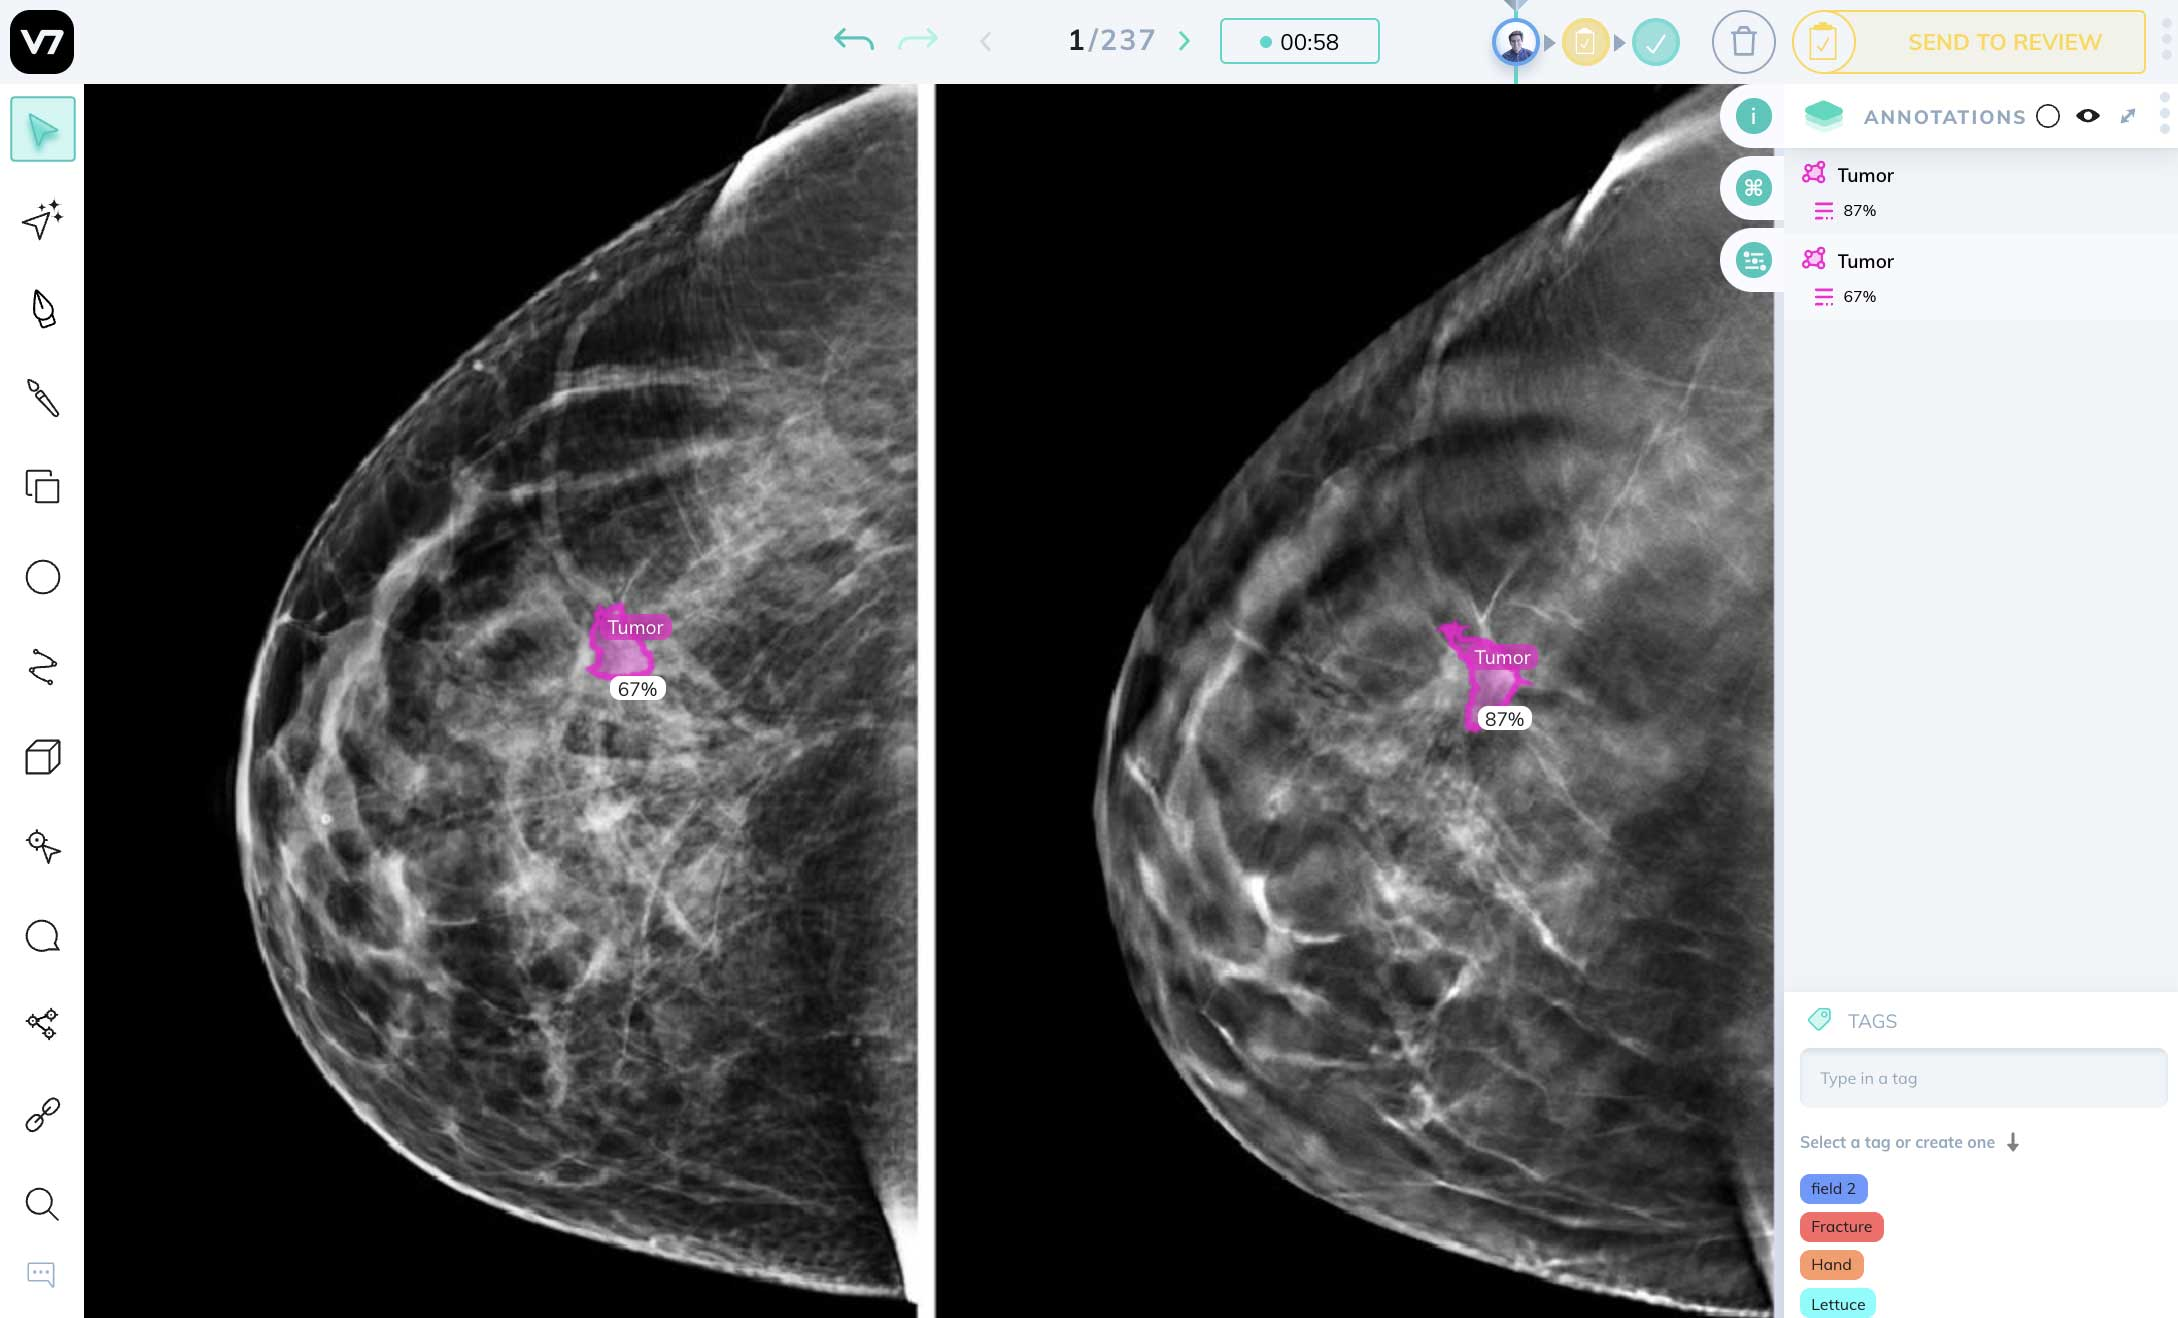 mammography detection AI in DICOM image annotation